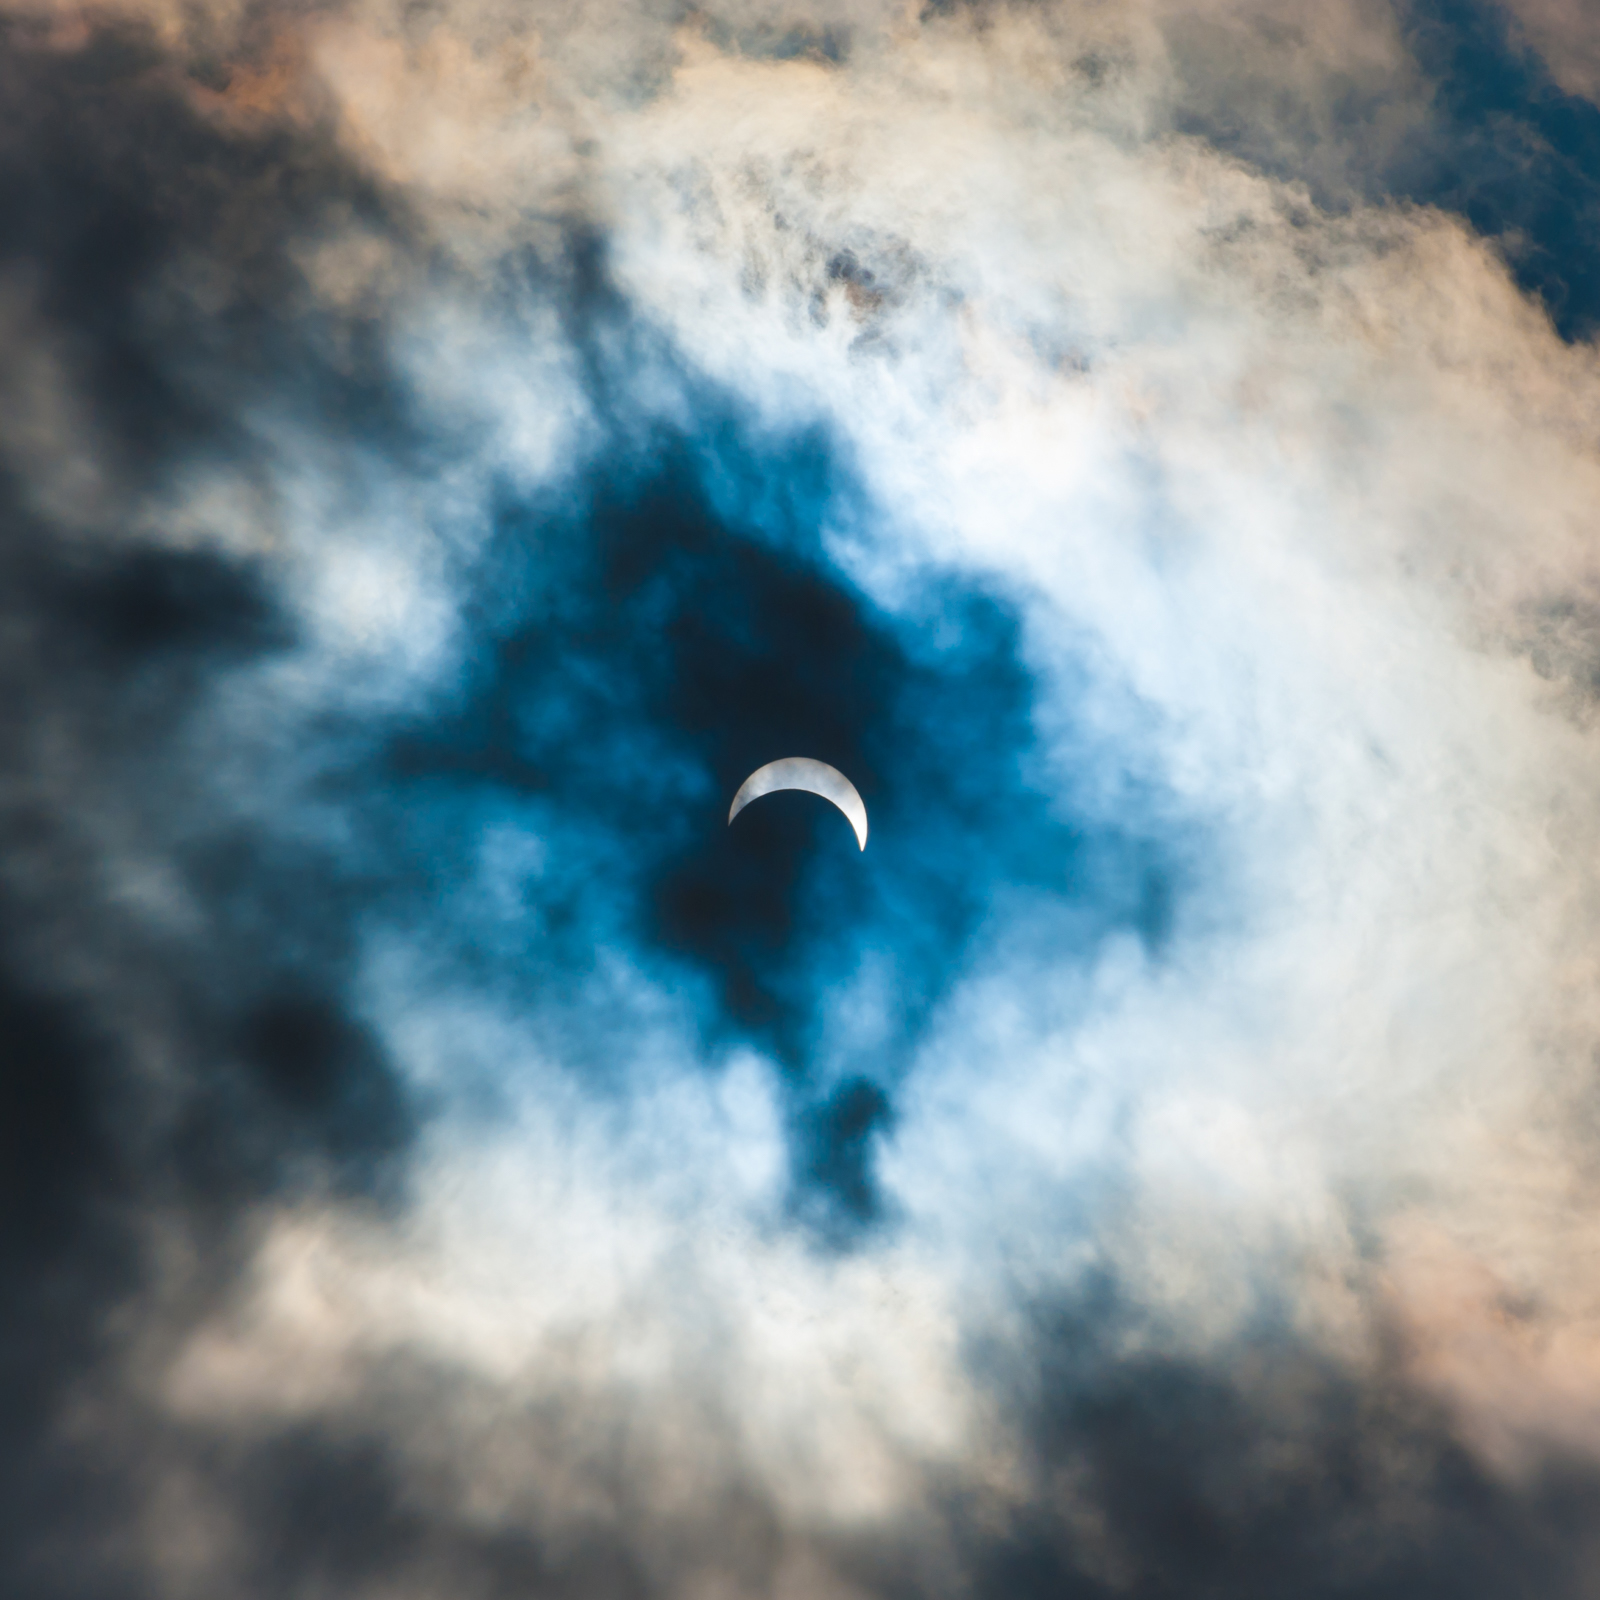 solar eclipse 2017, photo by Jason Woodruff